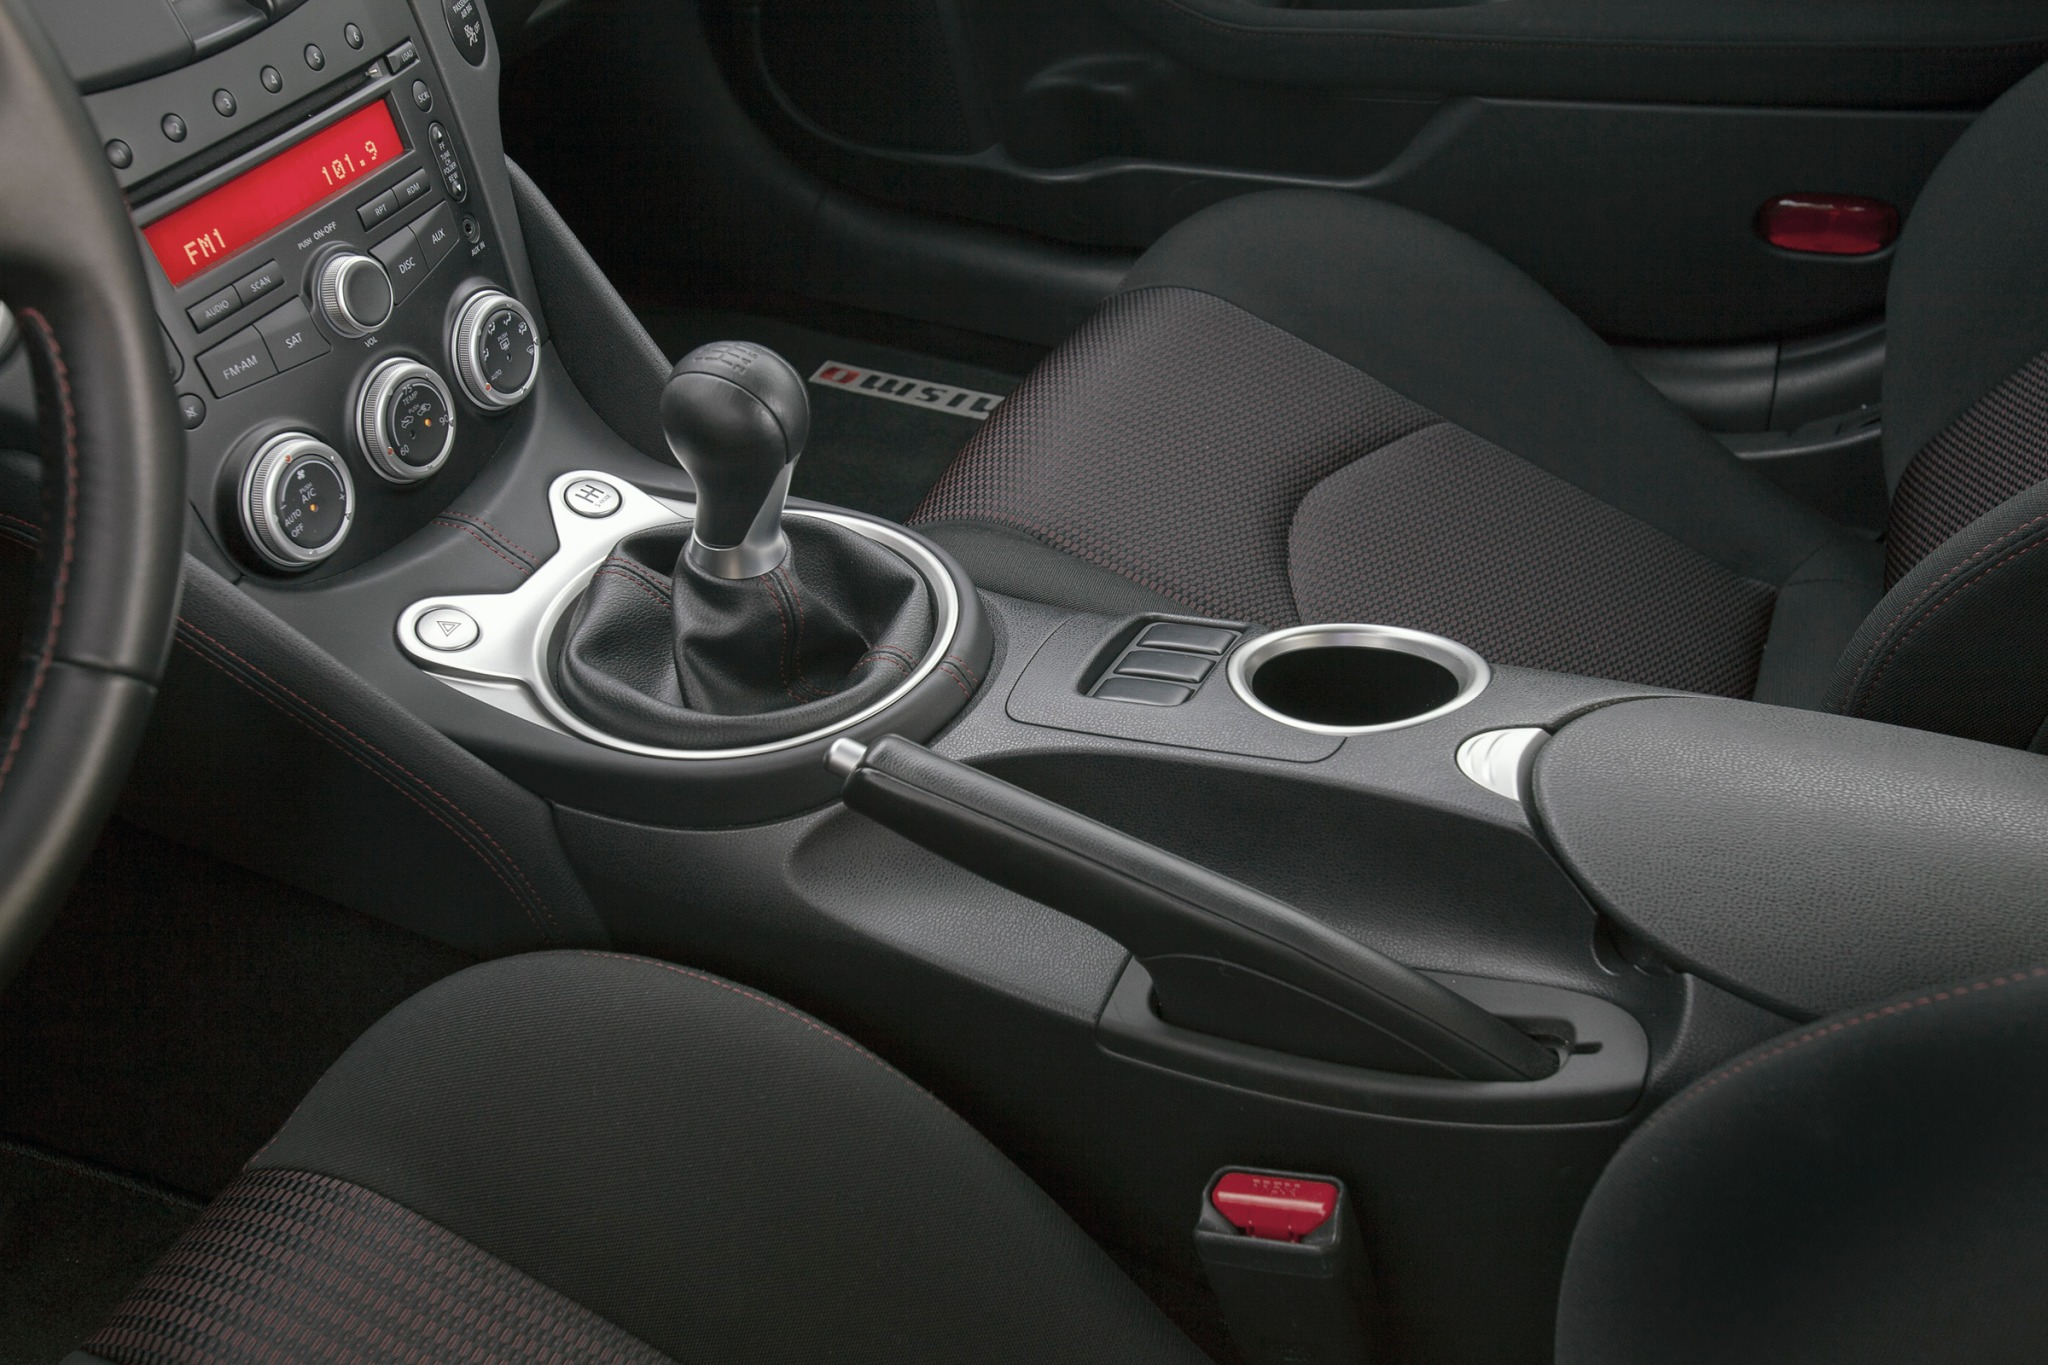 2012 nissan 370z nismo interior gallery hd cars wallpaper 2014 nissan 370z information and photos zombiedrive 2014 nissan 370z 7 2014 nissan 370z nismo co vanachro Image collections